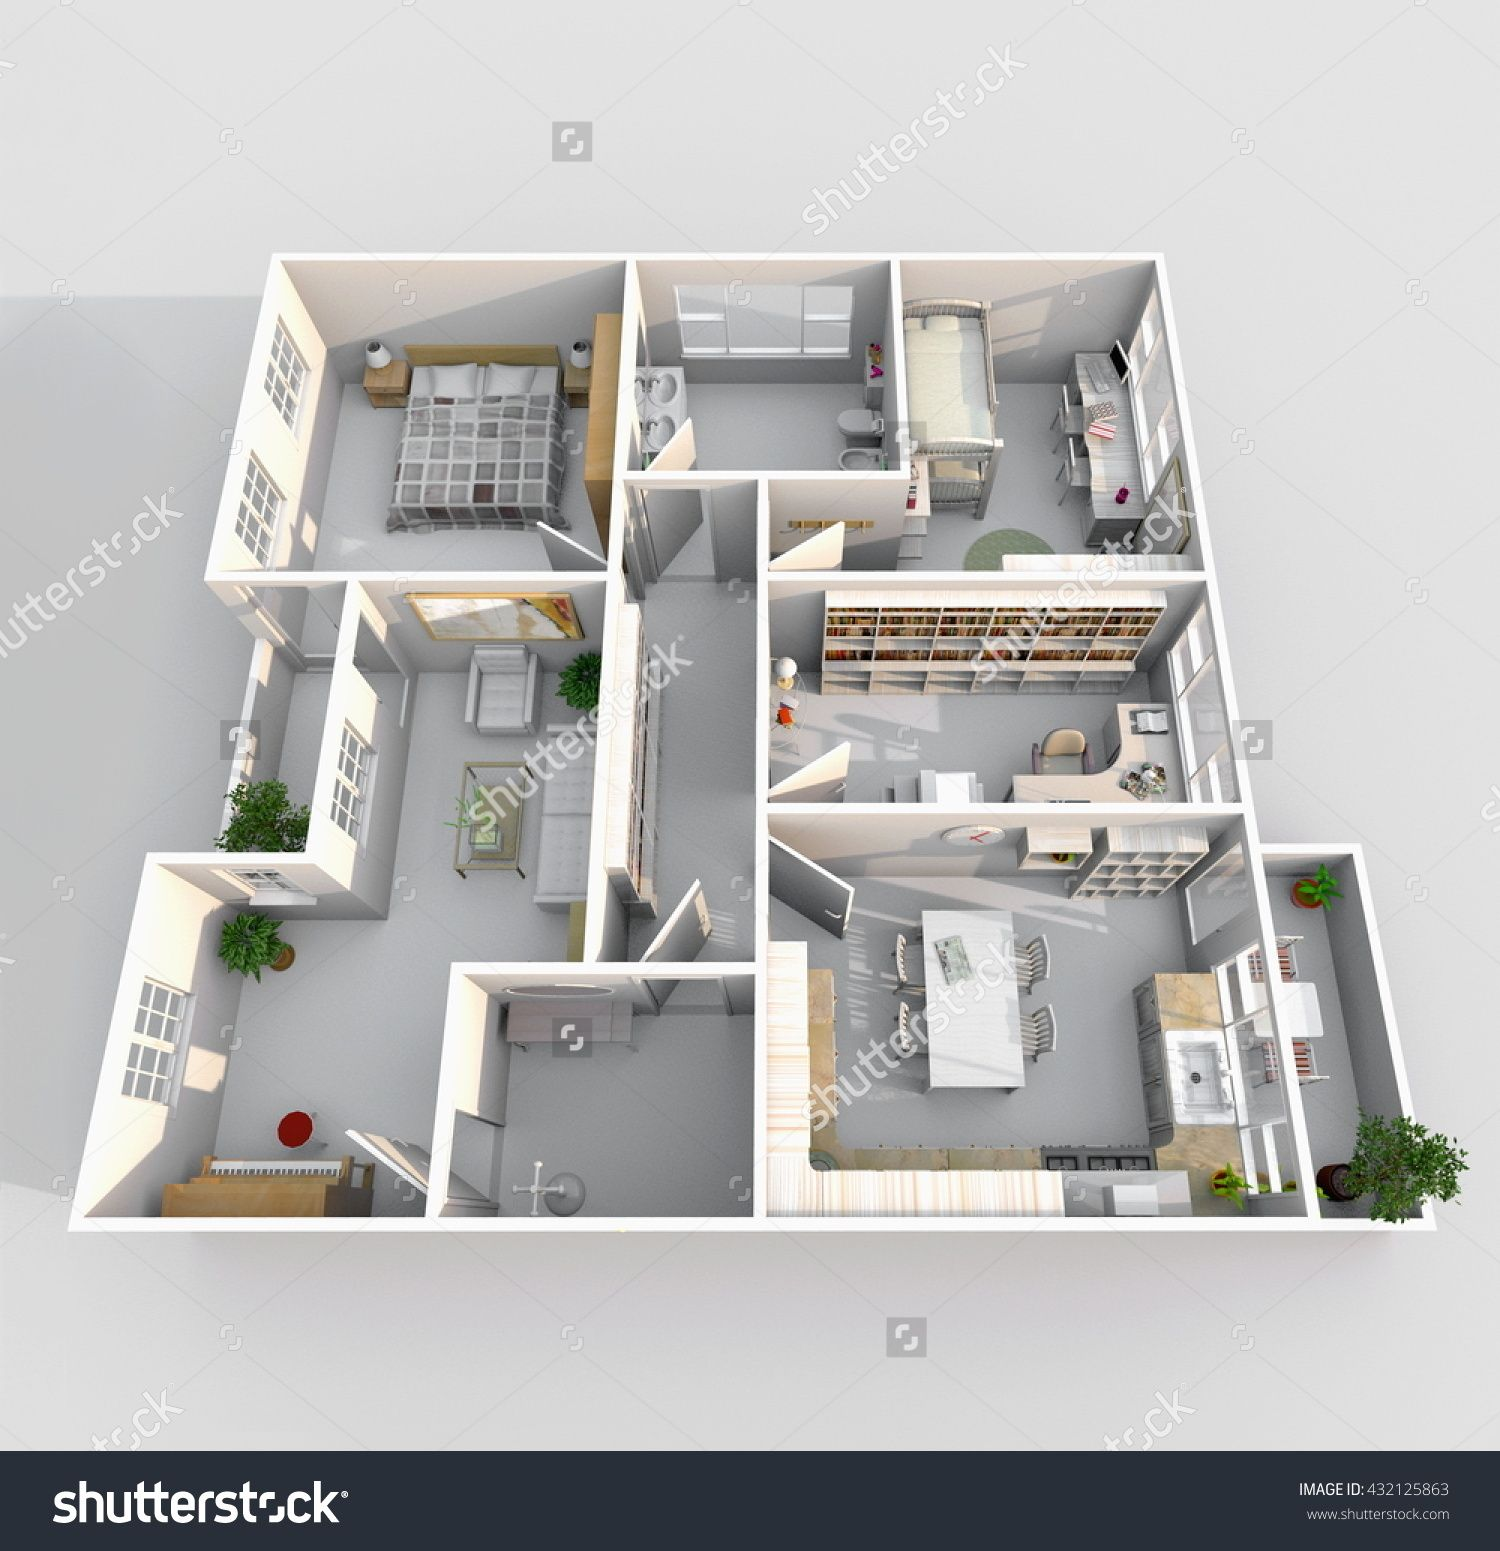 3d Interior Rendering Perspective View Of Big Furnished Home Apartment With Balcony Room Bathroom